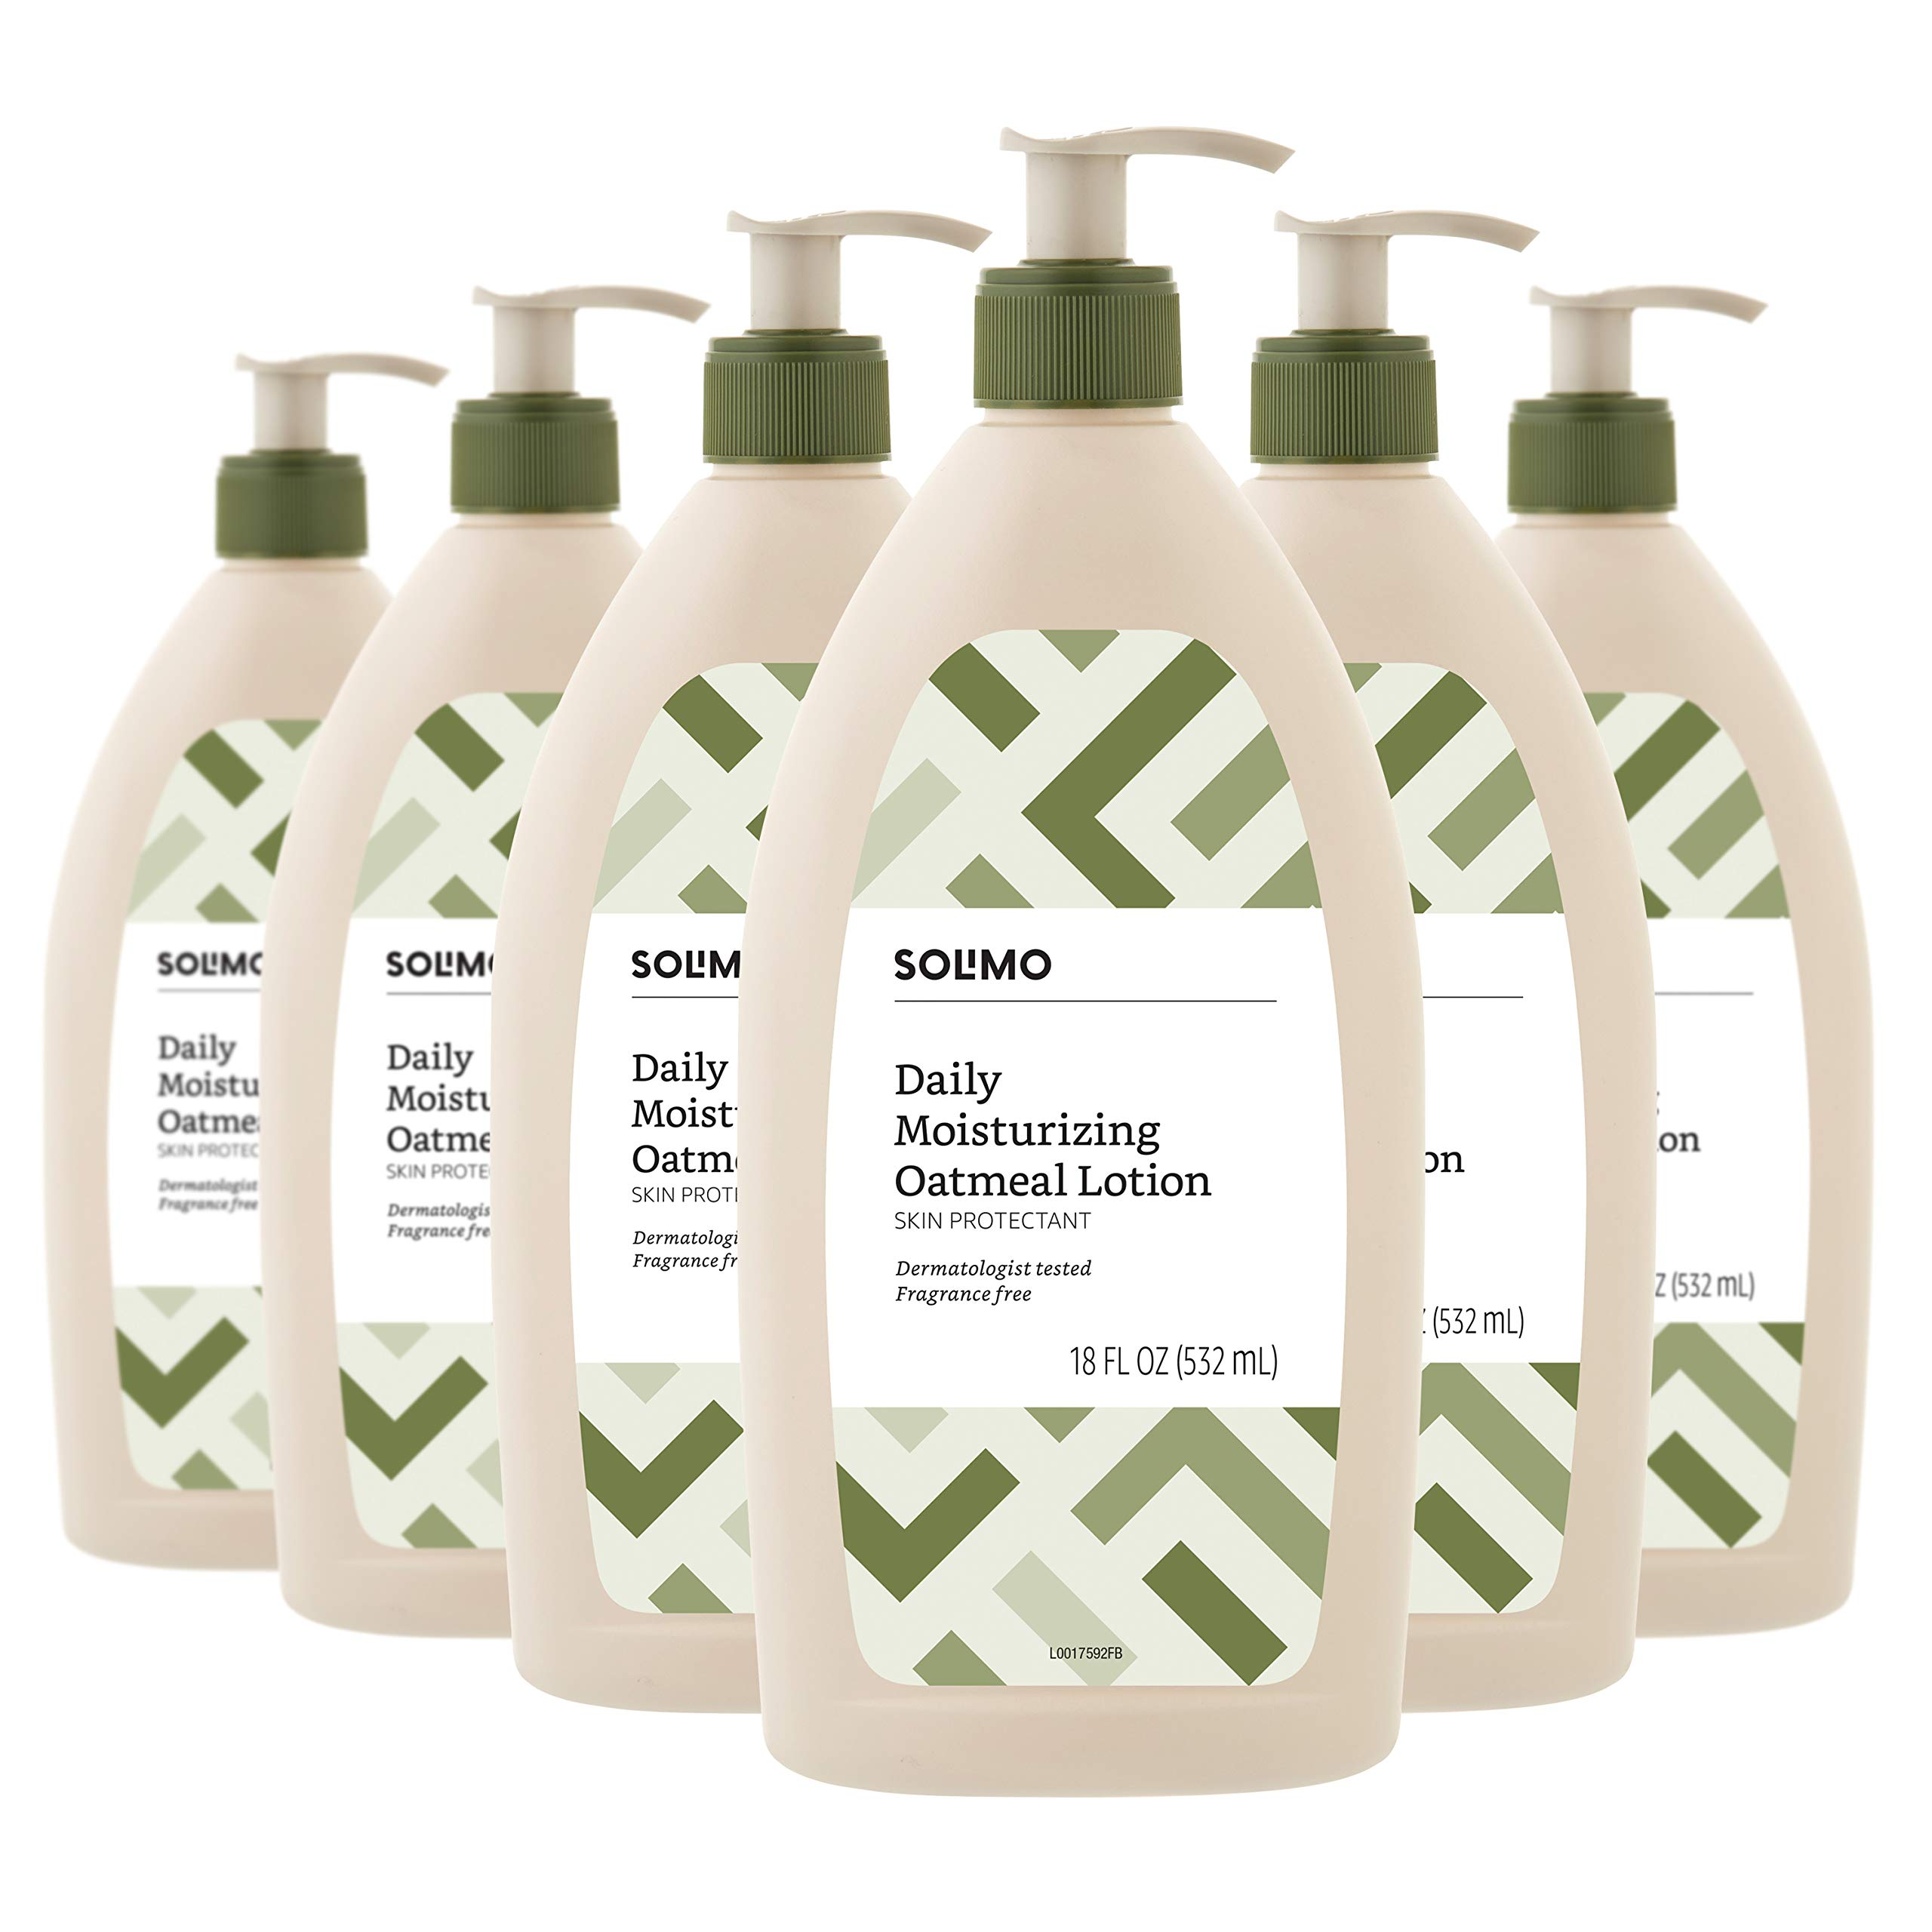 Amazon Brand - Solimo Daily Moisturizing Oatmeal Lotion, Fragrance Free, 18 Fluid Ounce (Pack of 6) by Solimo